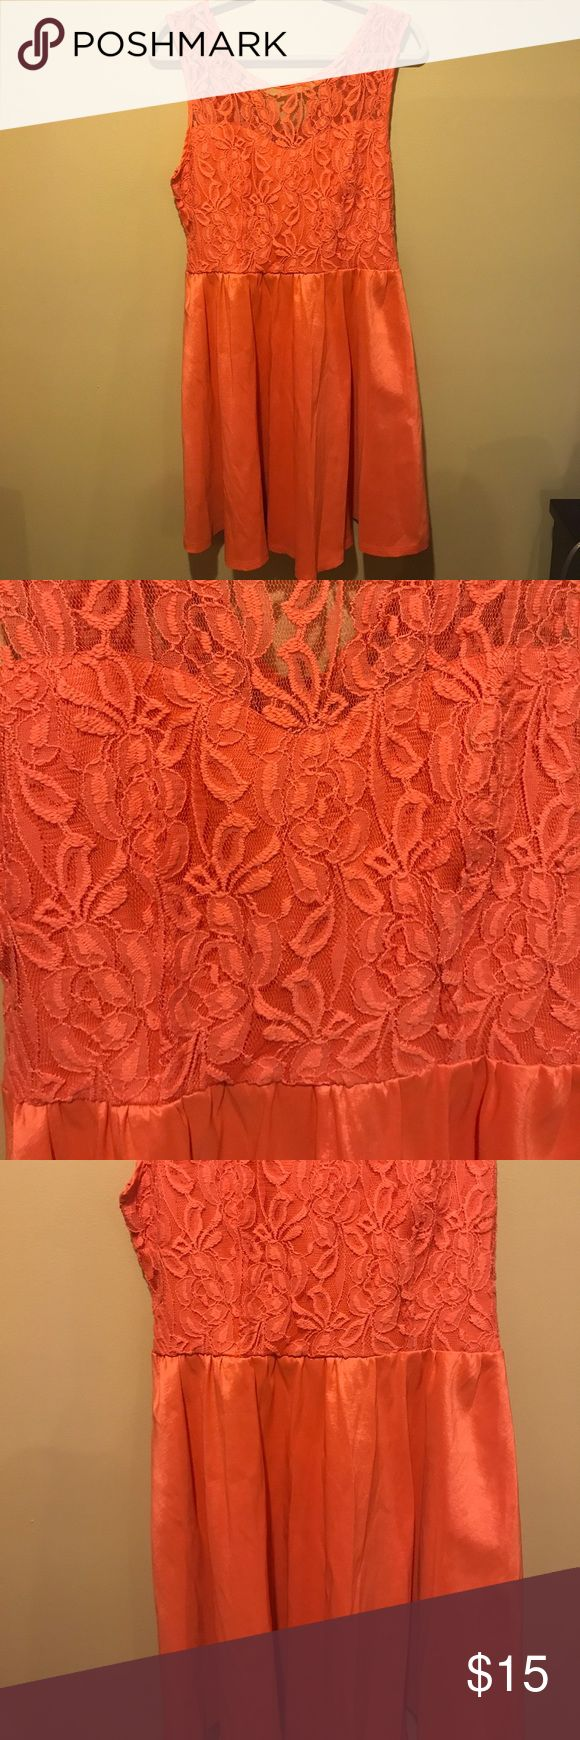 Coral lace dress 👗 Worn once! Dress is in great condition. Coral colored, lace on top and solid on the bottom. Material is 74% polyester, 22% nylon and 4% spandex. La Seala Dresses Wedding